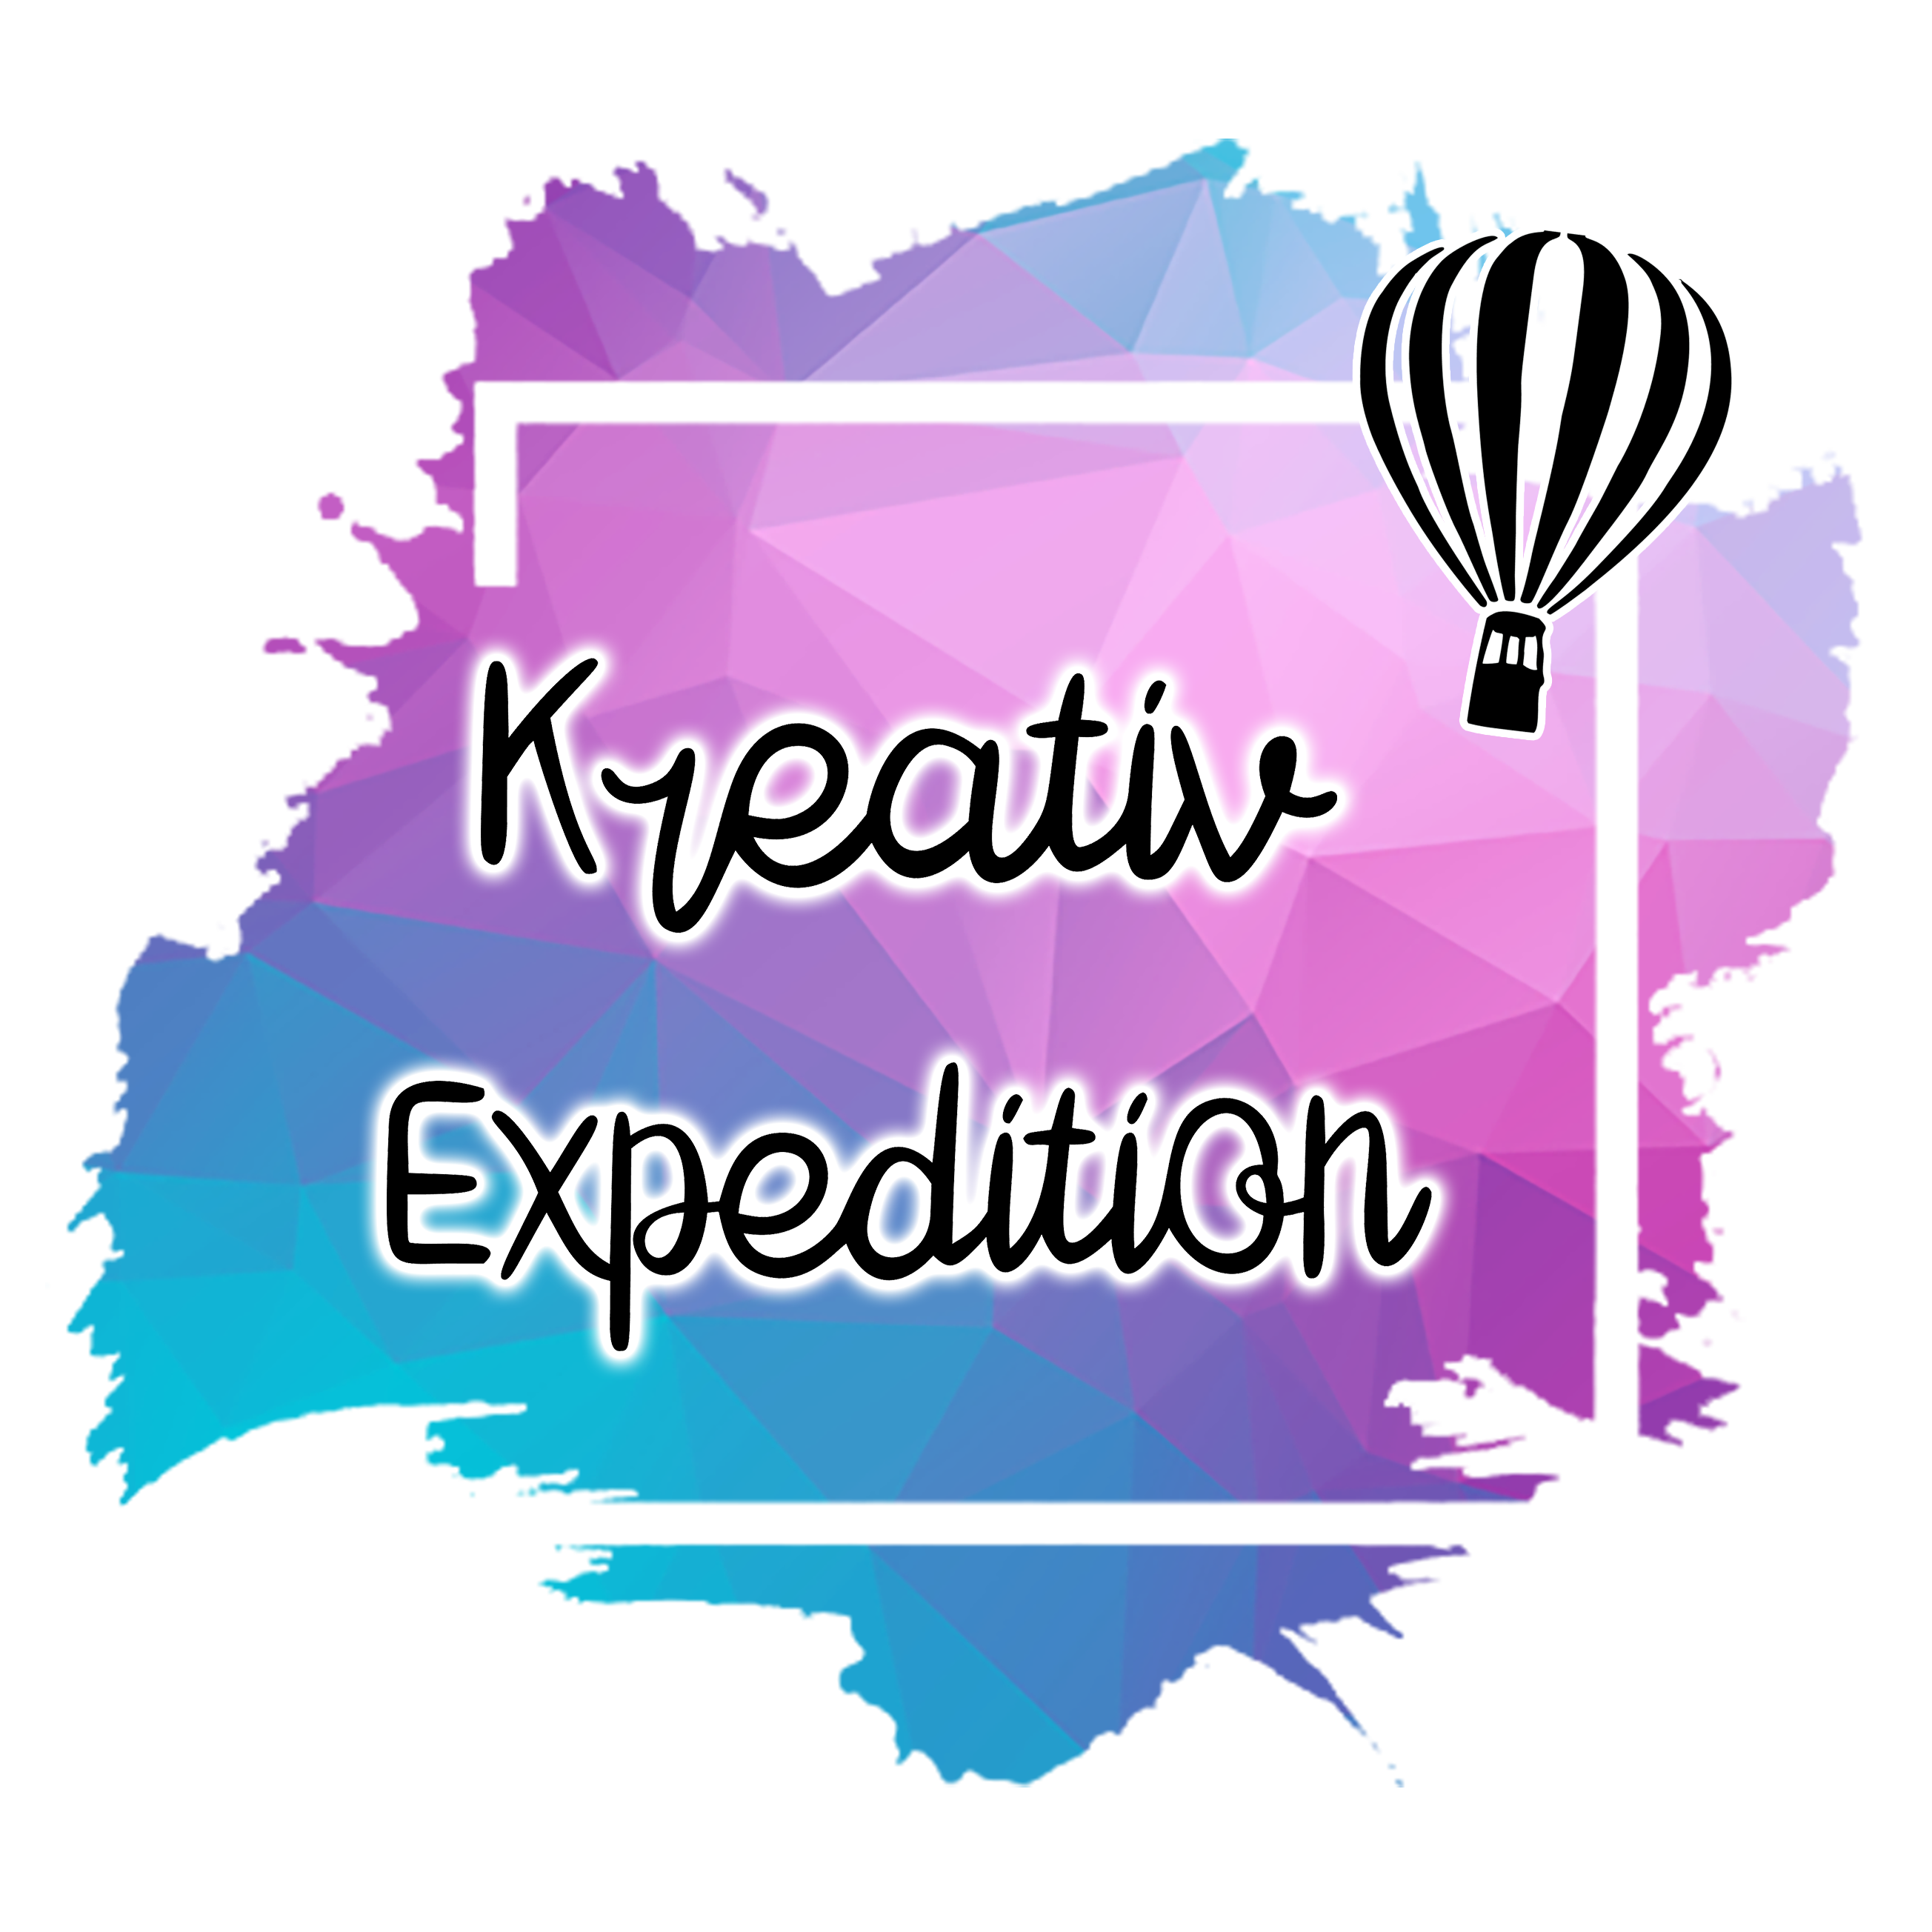 Kreativ Expedition